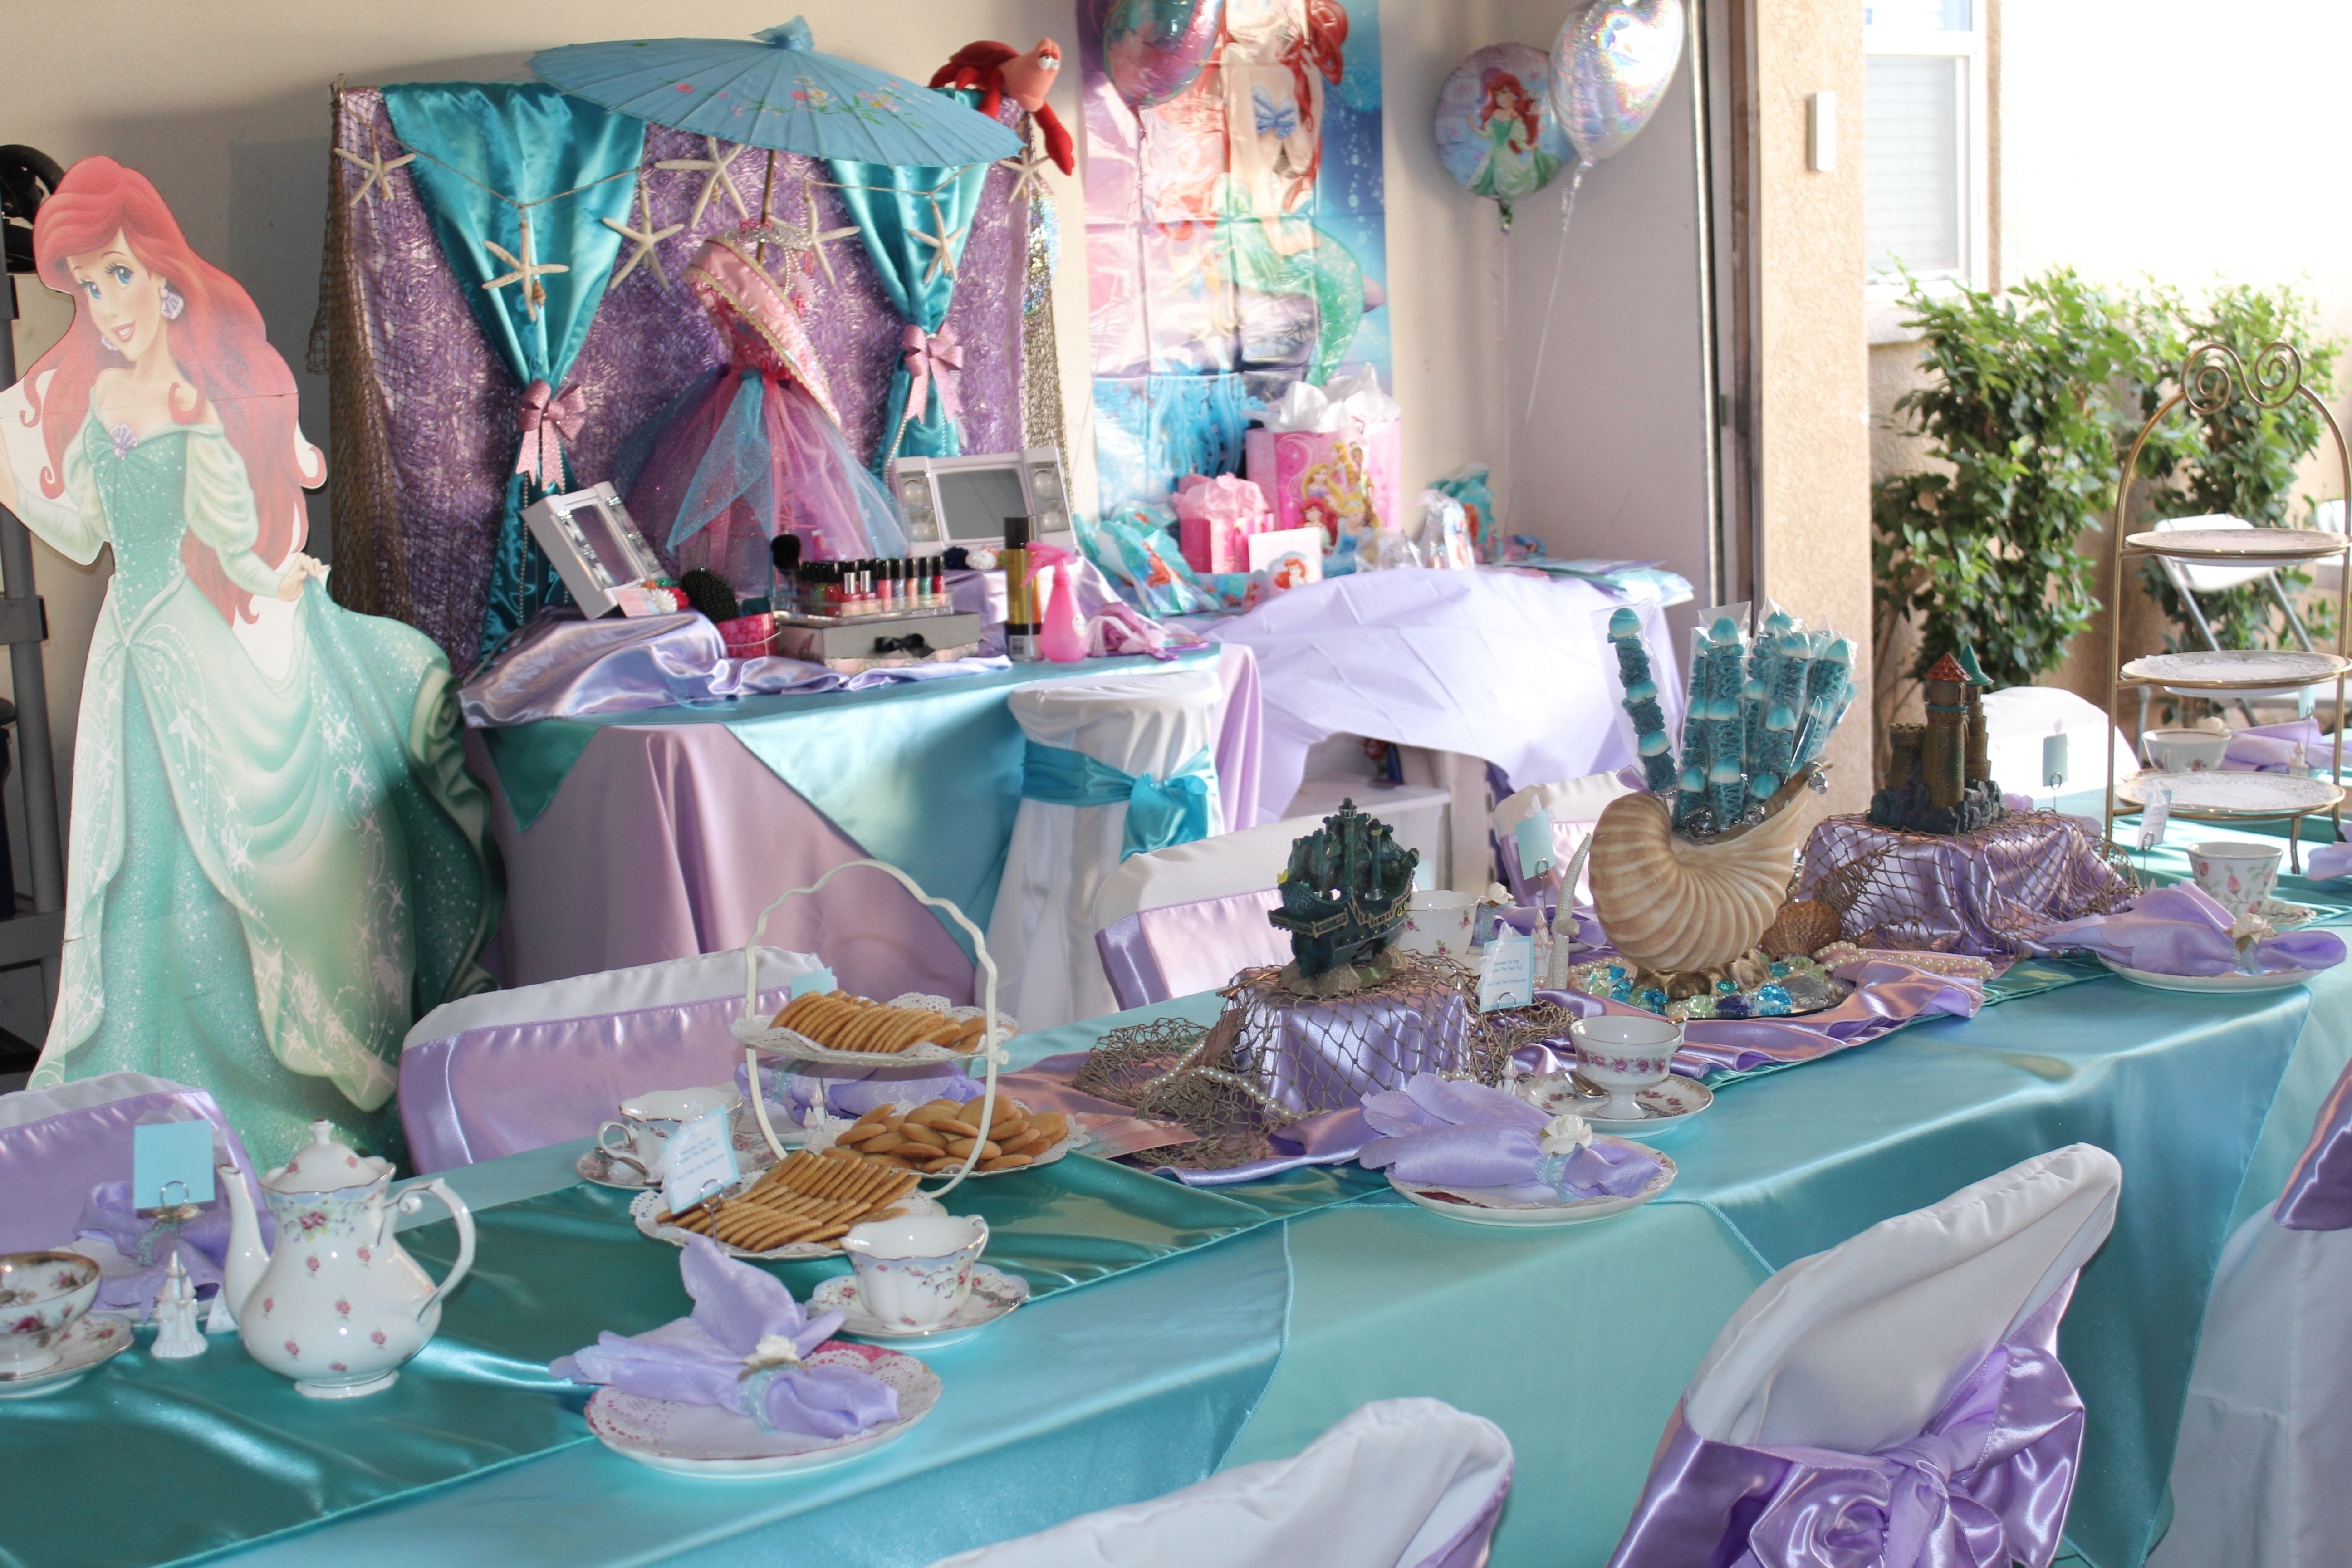 Tea Table Set up and Glamour Session Set up in Little Mermaid Theme. & Tea Table Set up and Glamour Session Set up in Little Mermaid Theme ...